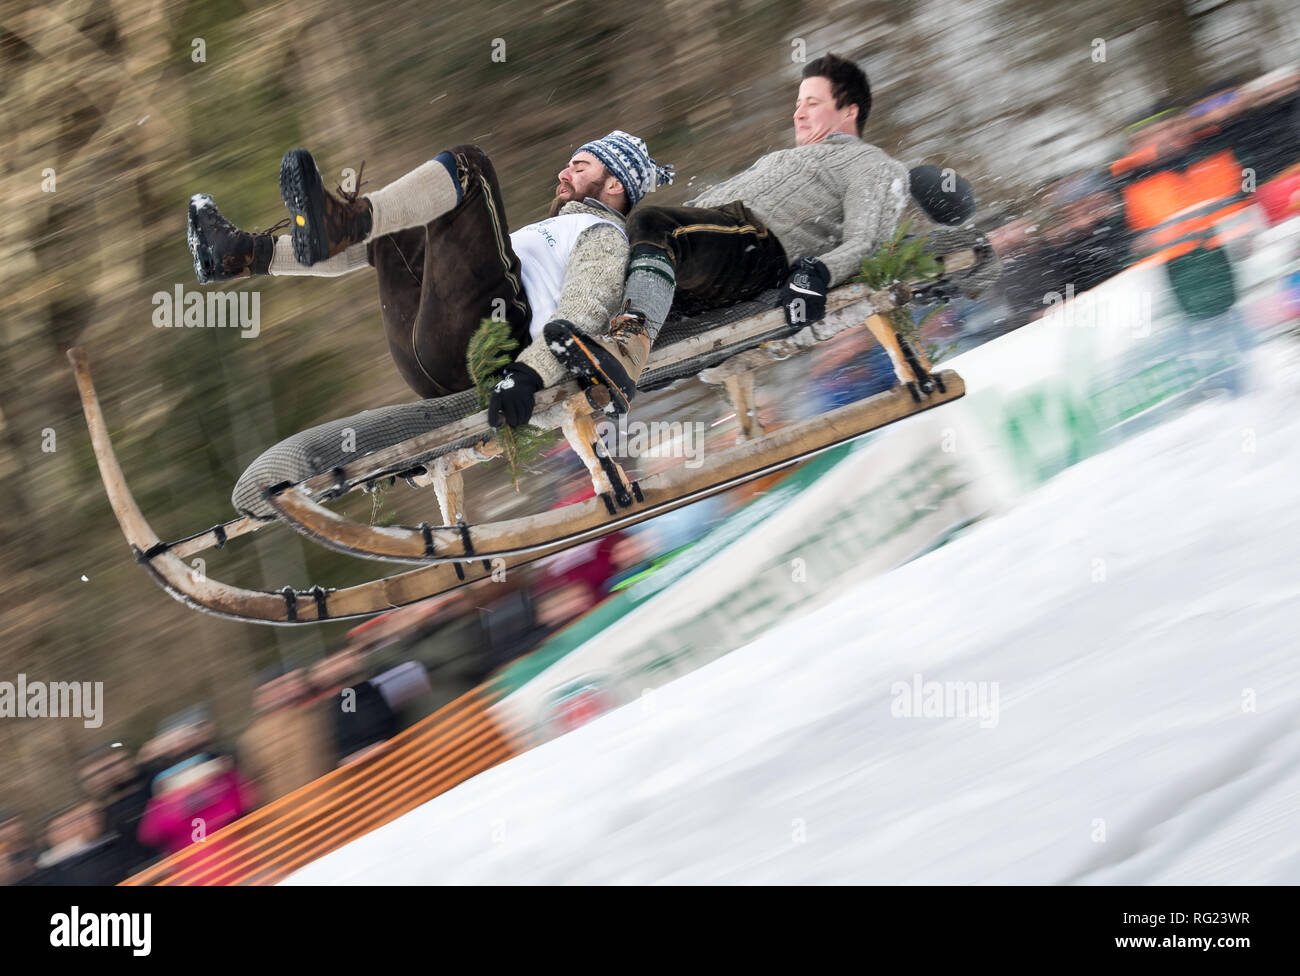 Gaissach, Bavaria, Germany. 27 January 2019, Bavaria, Gaißach: A beak sled with 2 persons as crew jumps past the spectators in the finish area. Based on a bet from 1928, the sledges travel down a 1.5 kilometre stretch. In addition to the driving time, the finish jump on a small natural hill is also evaluated. Mechanical aids such as brakes or controls must not be used. Photo: Peter Kneffel/dpa Credit: dpa picture alliance/Alamy Live News - Stock Image